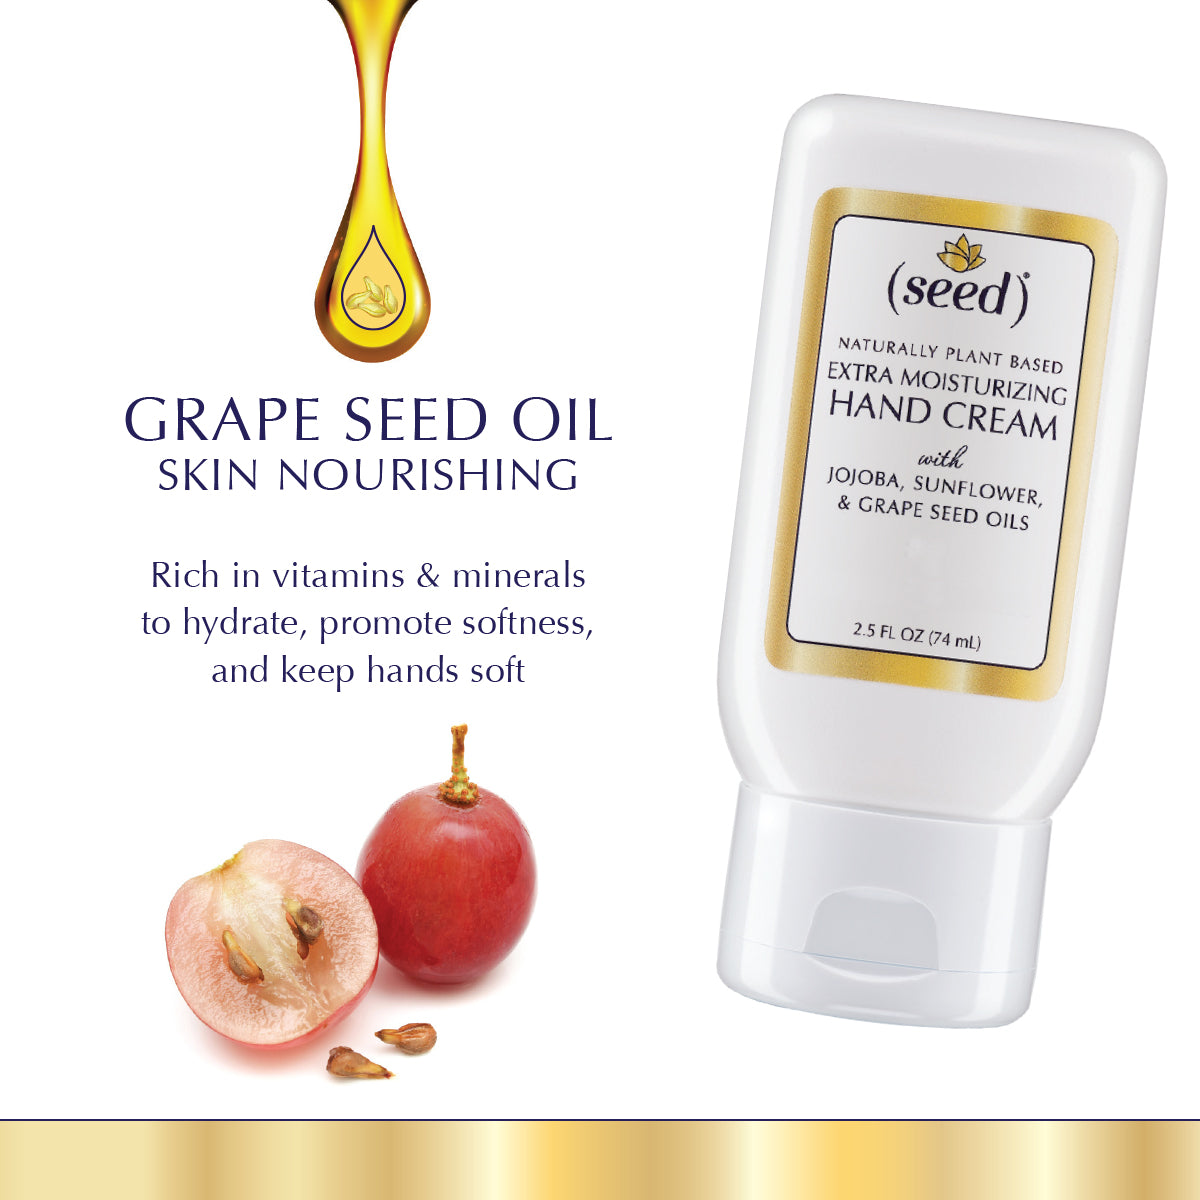 Seed Extra Moisturizing Hand Cream is enriched with grape seed oil